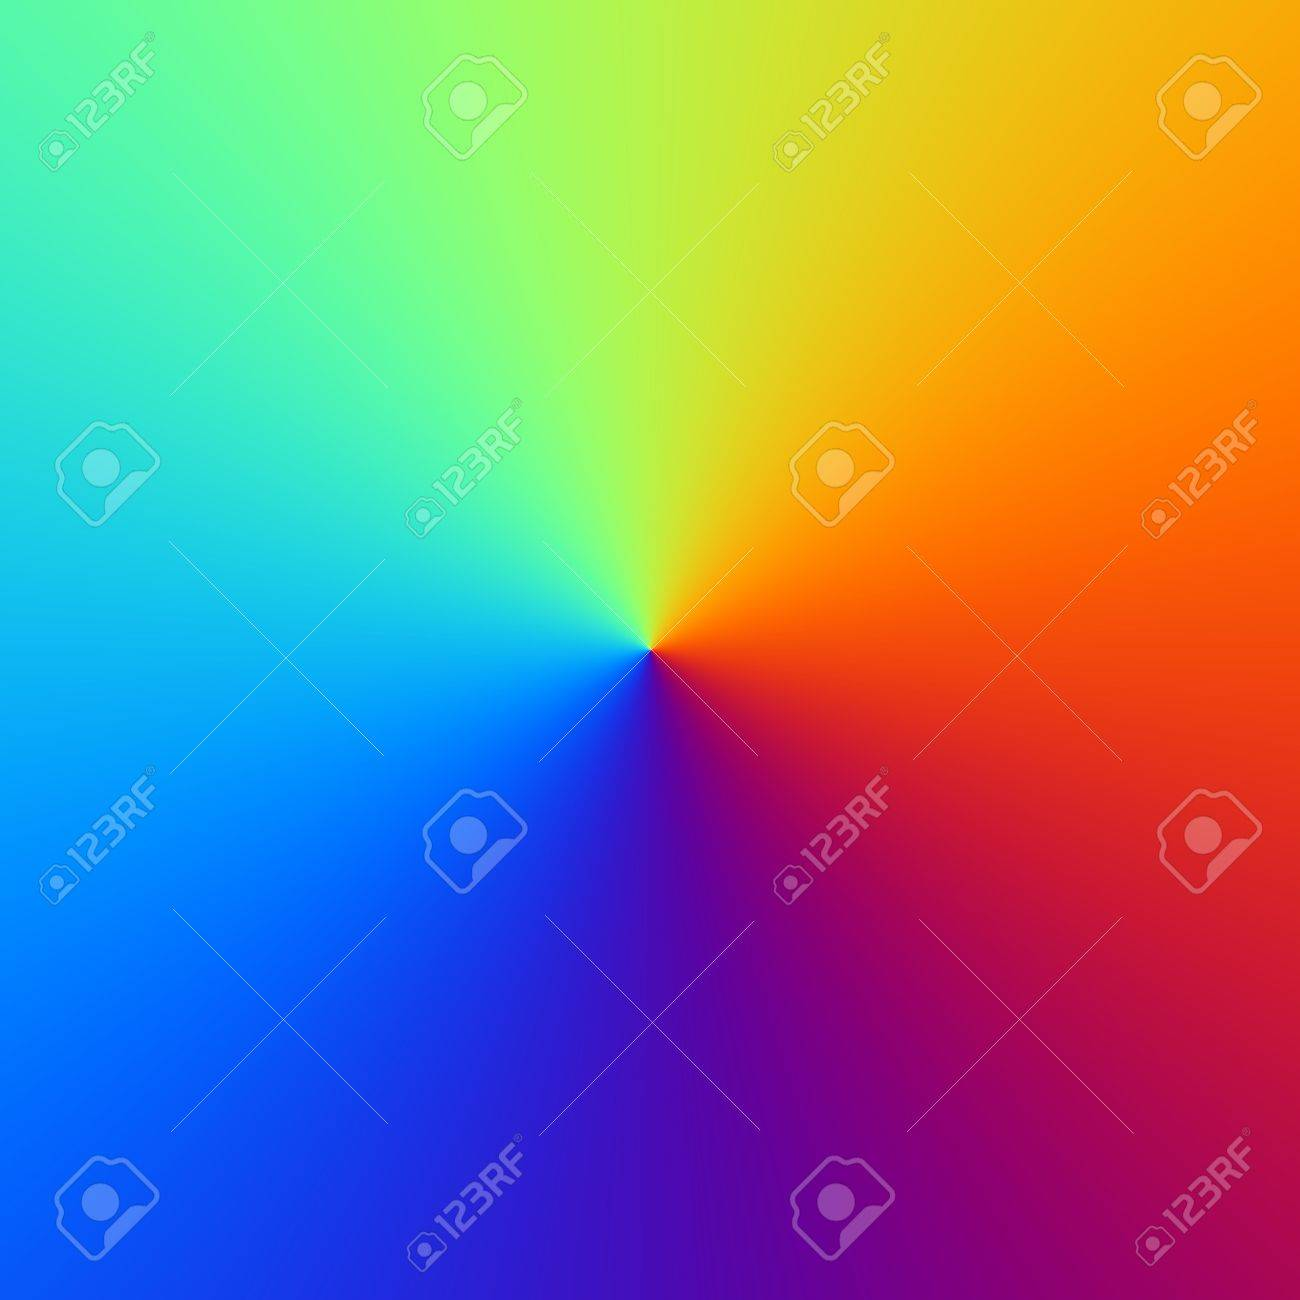 background containing the whole color spectrum Stock Photo - 5720986